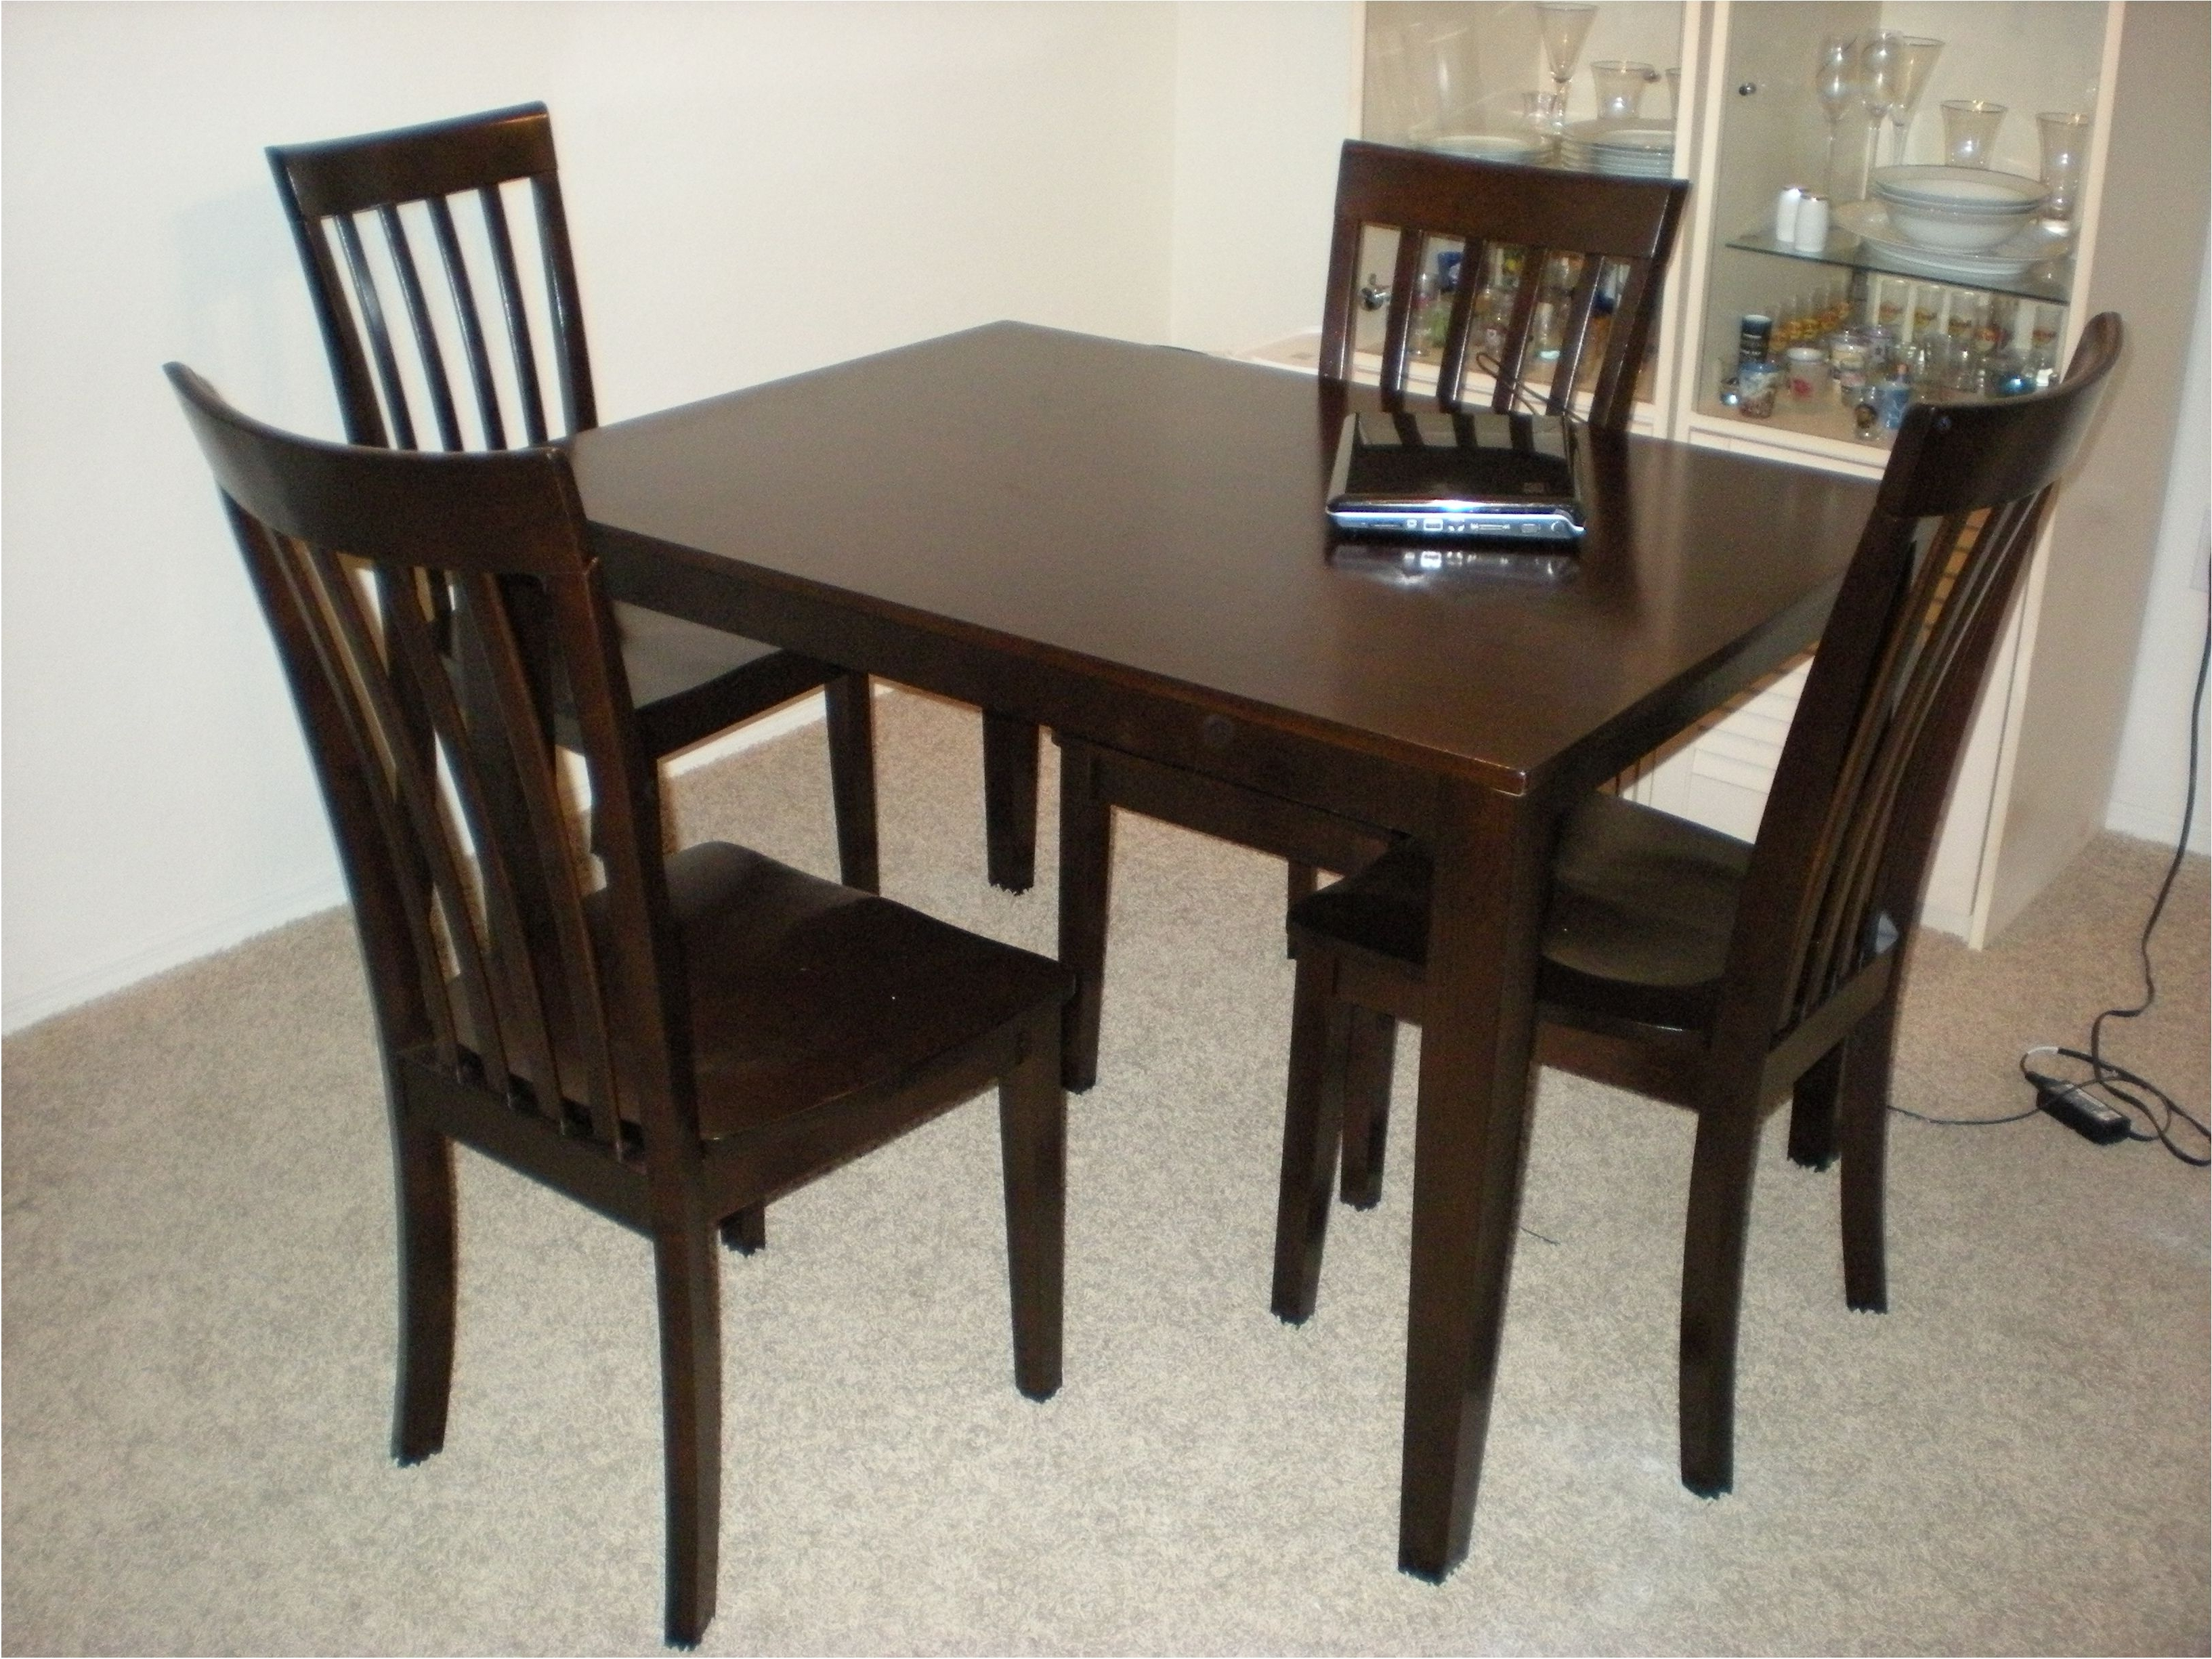 Small Dark Wood Dining Tables Intended For 2018 Wonderfull Furniture Green Wooden Small Kitchen Chair Black Dining (View 3 of 25)